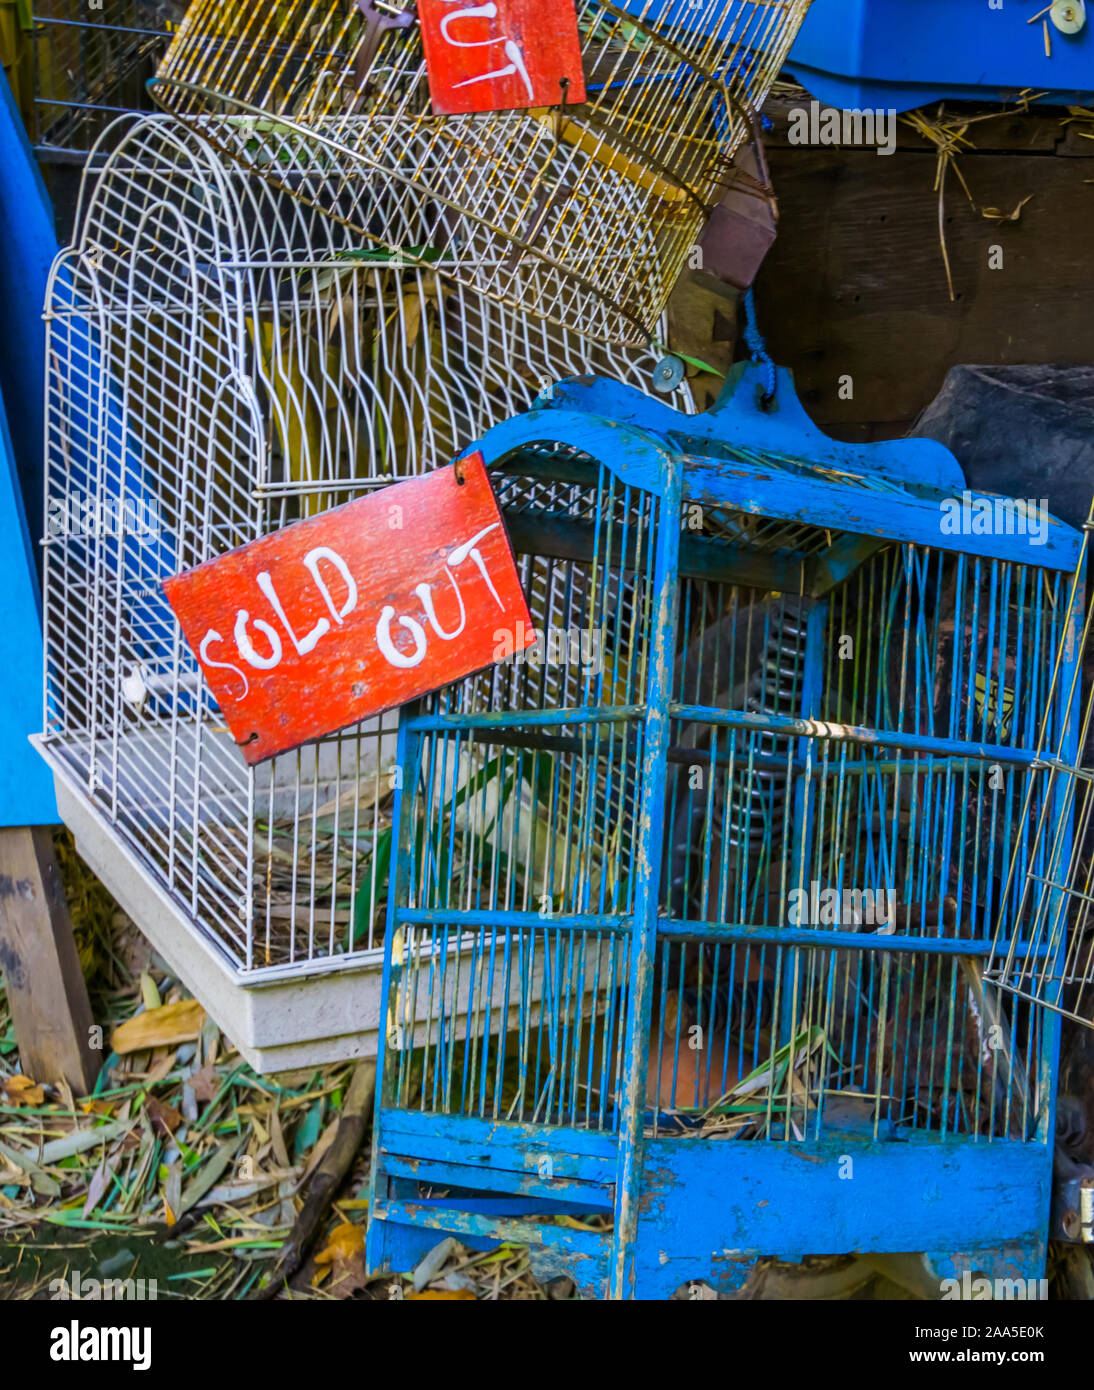 Les cages à oiseaux en libre avec sold out sign, commerce des animaux en Asie, Animal shop background Banque D'Images